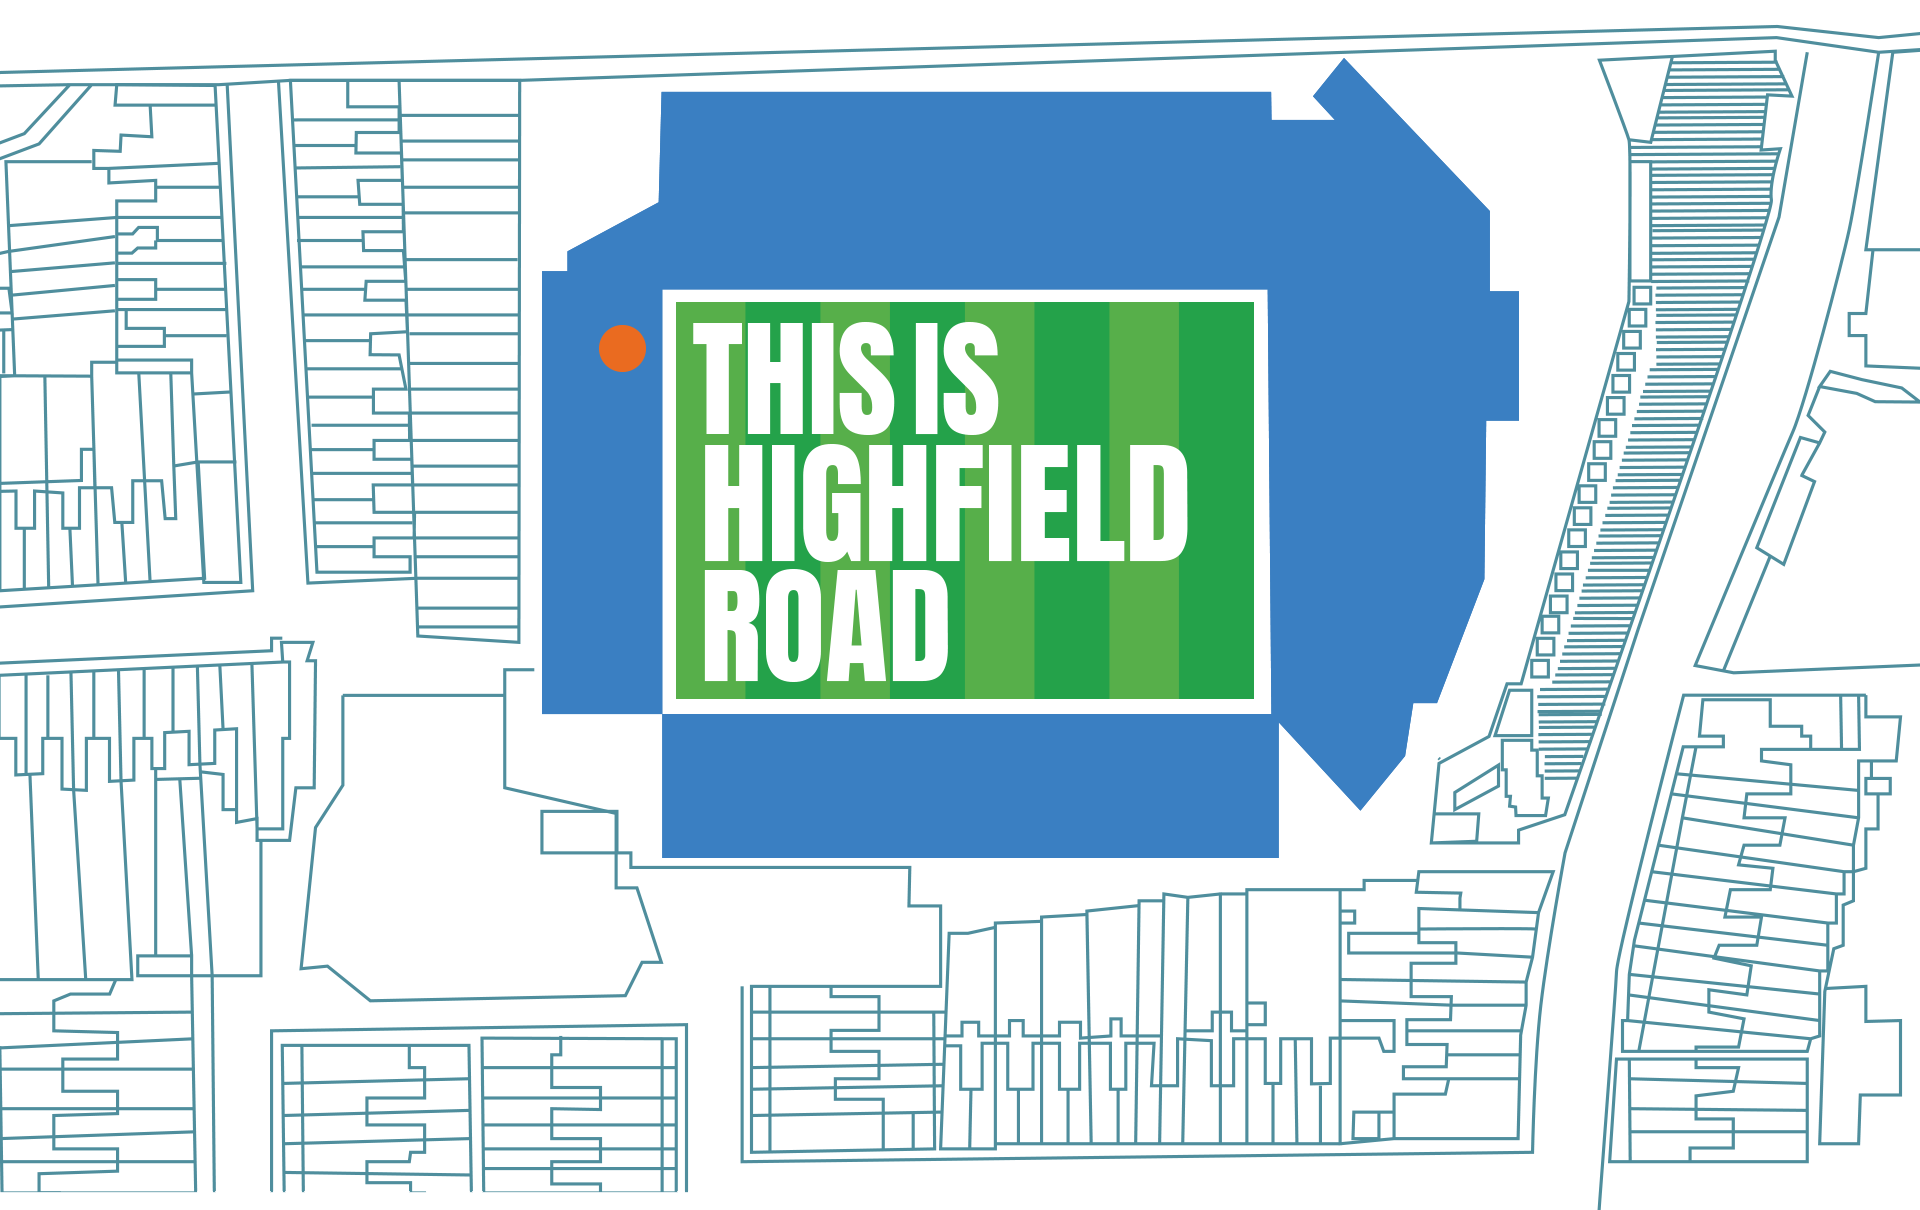 This Is Highfield Road Banner Image